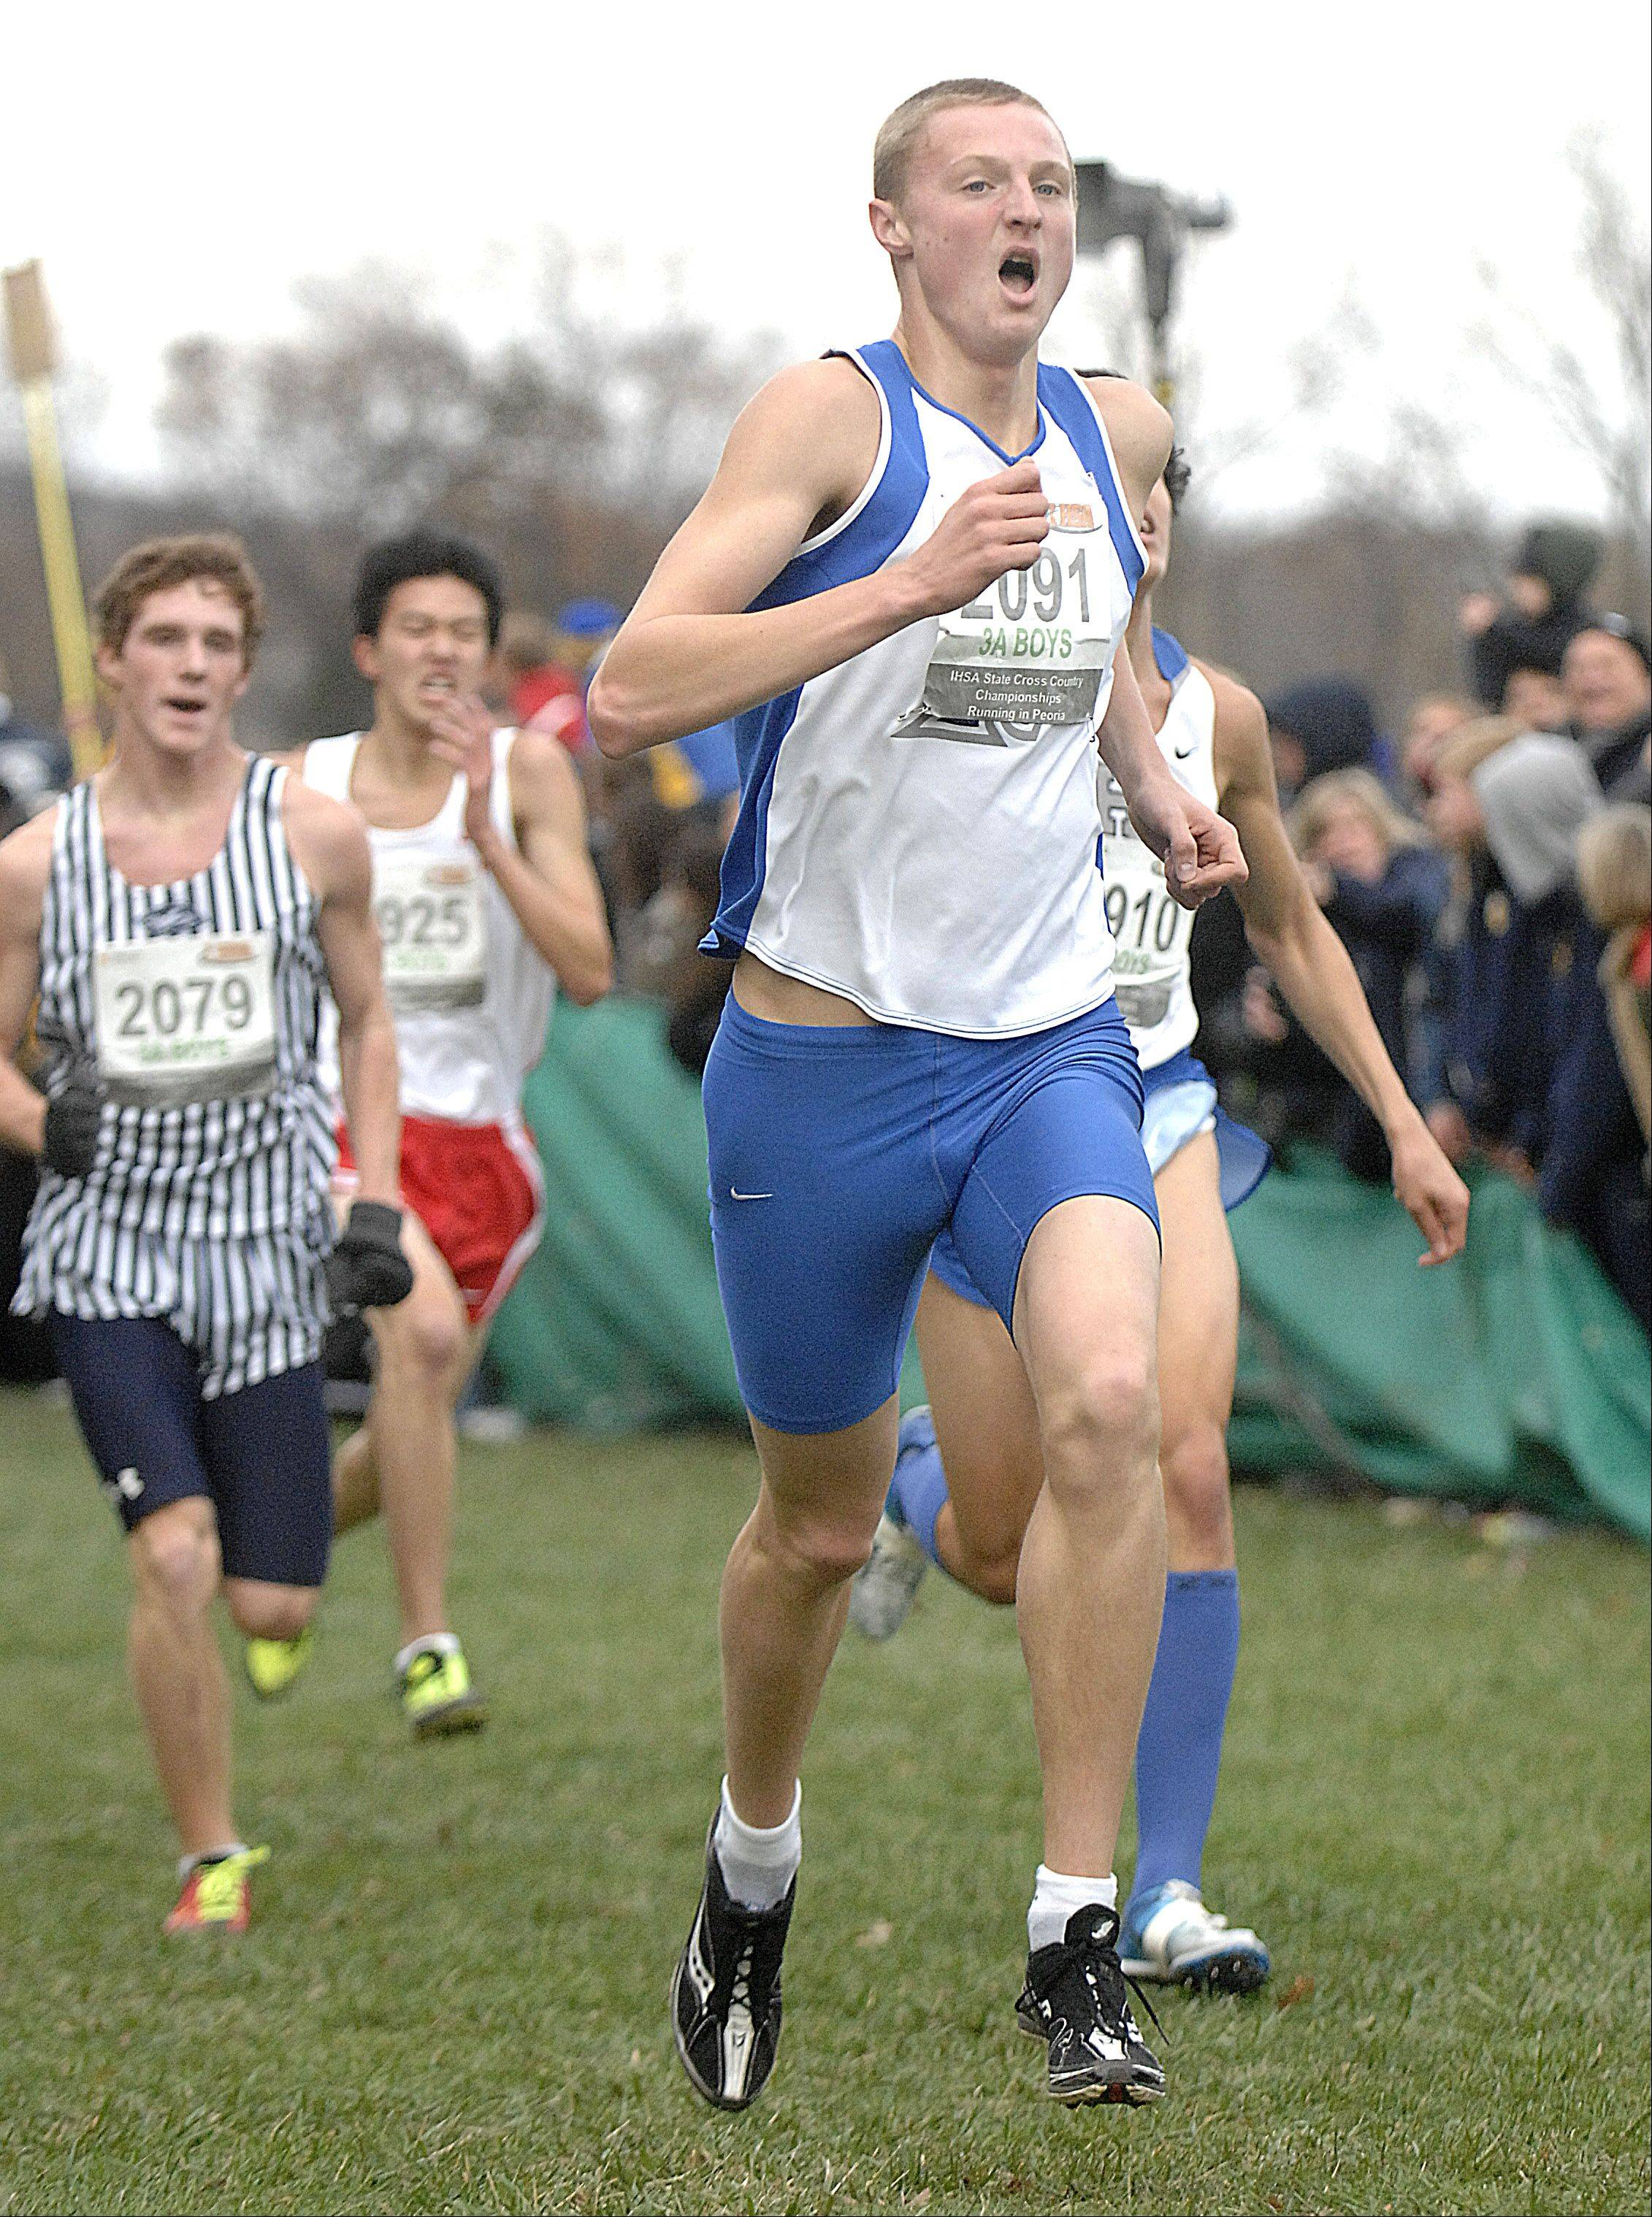 St. Charles North's Spencer Gray takes 45th place in the state cross country 3A final in Peoria on Saturday, November 3.